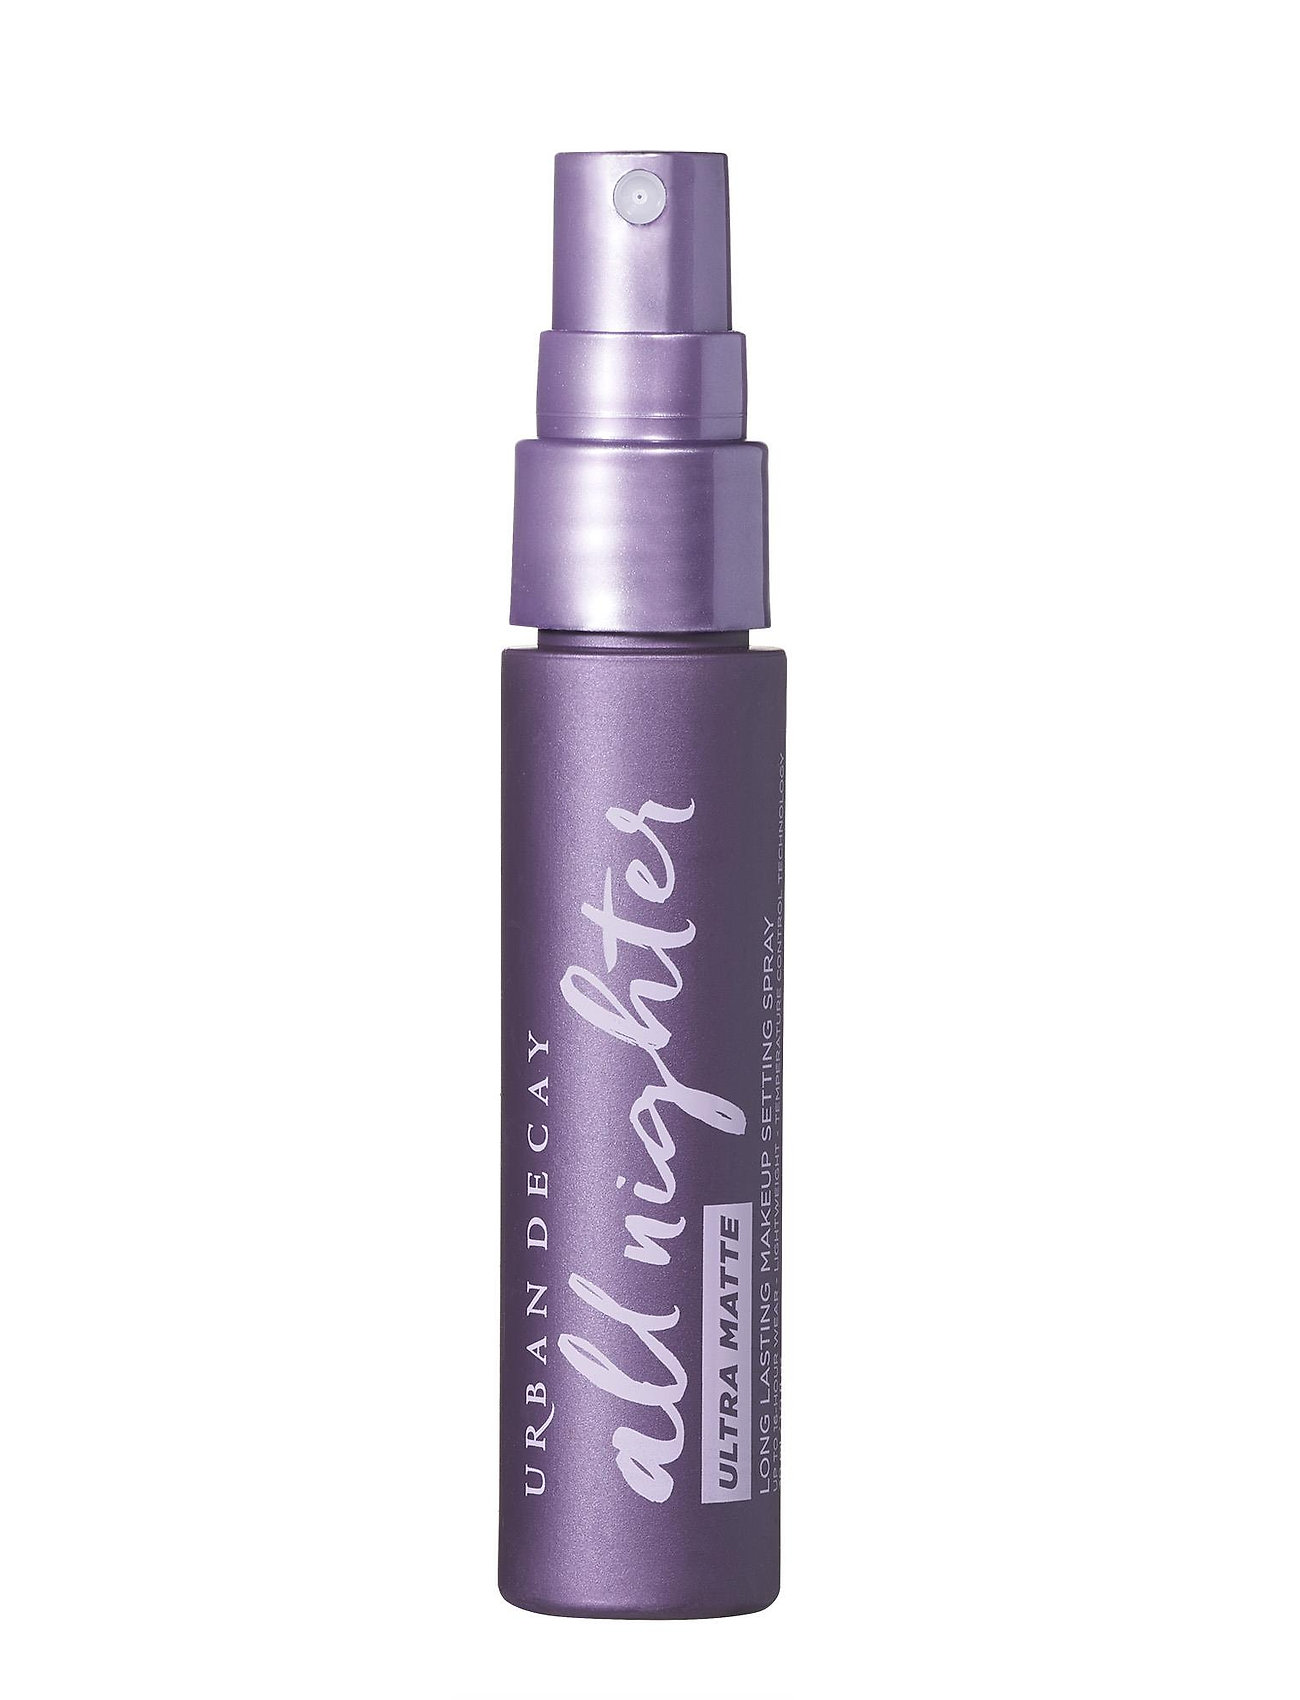 Urban Decay - All Nighter Ultra Matte Setting Spray Travel Size - setting spray - clear - 1